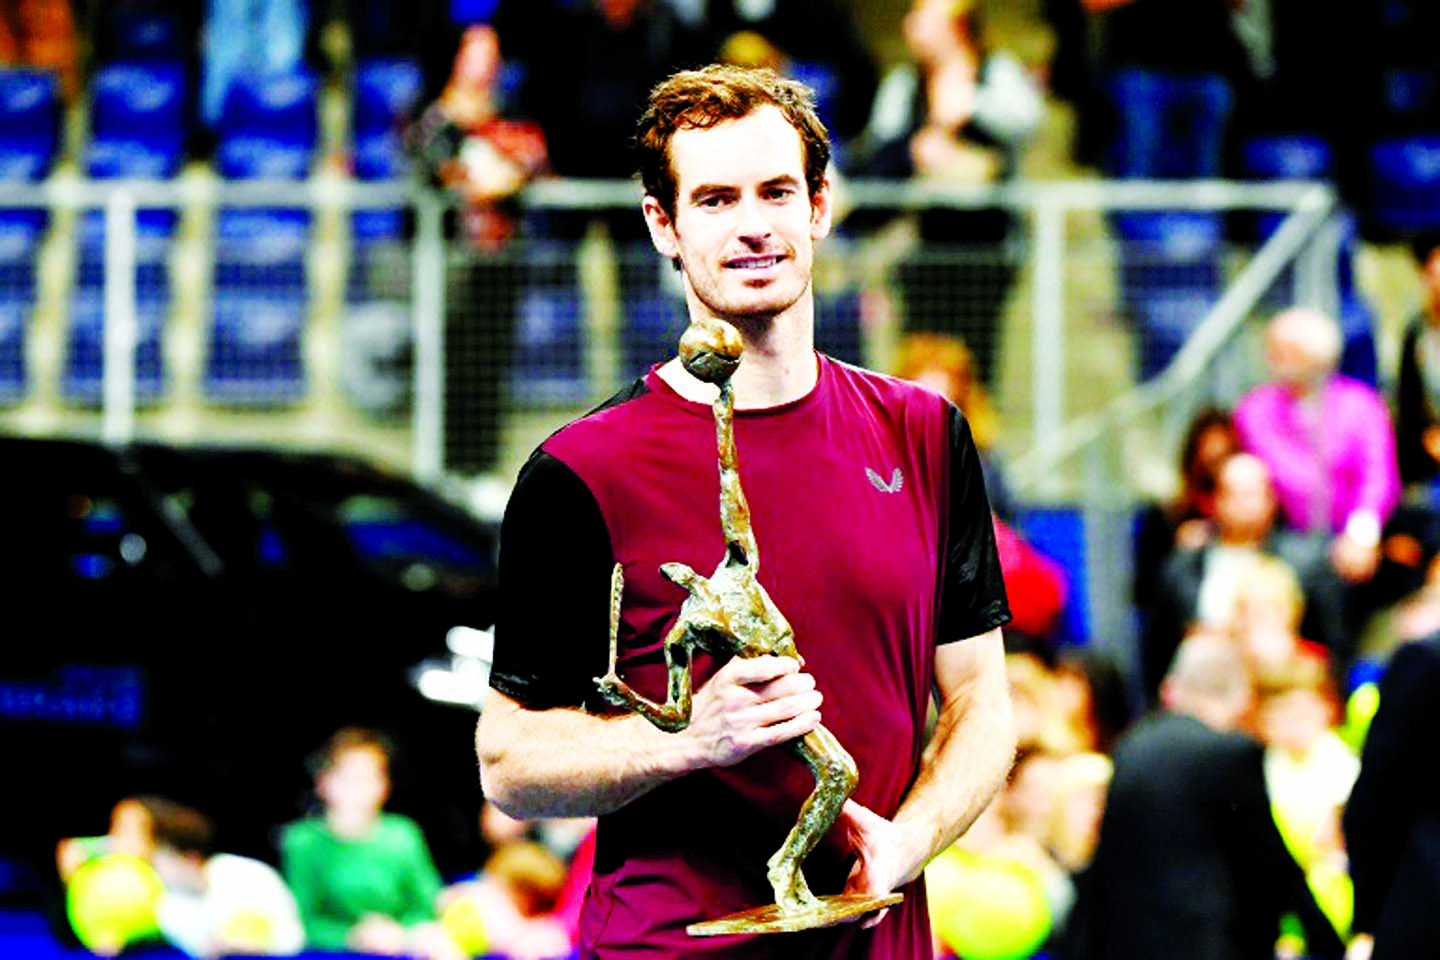 Andy Murray jokes 'I need to get back on the road' after European Open win